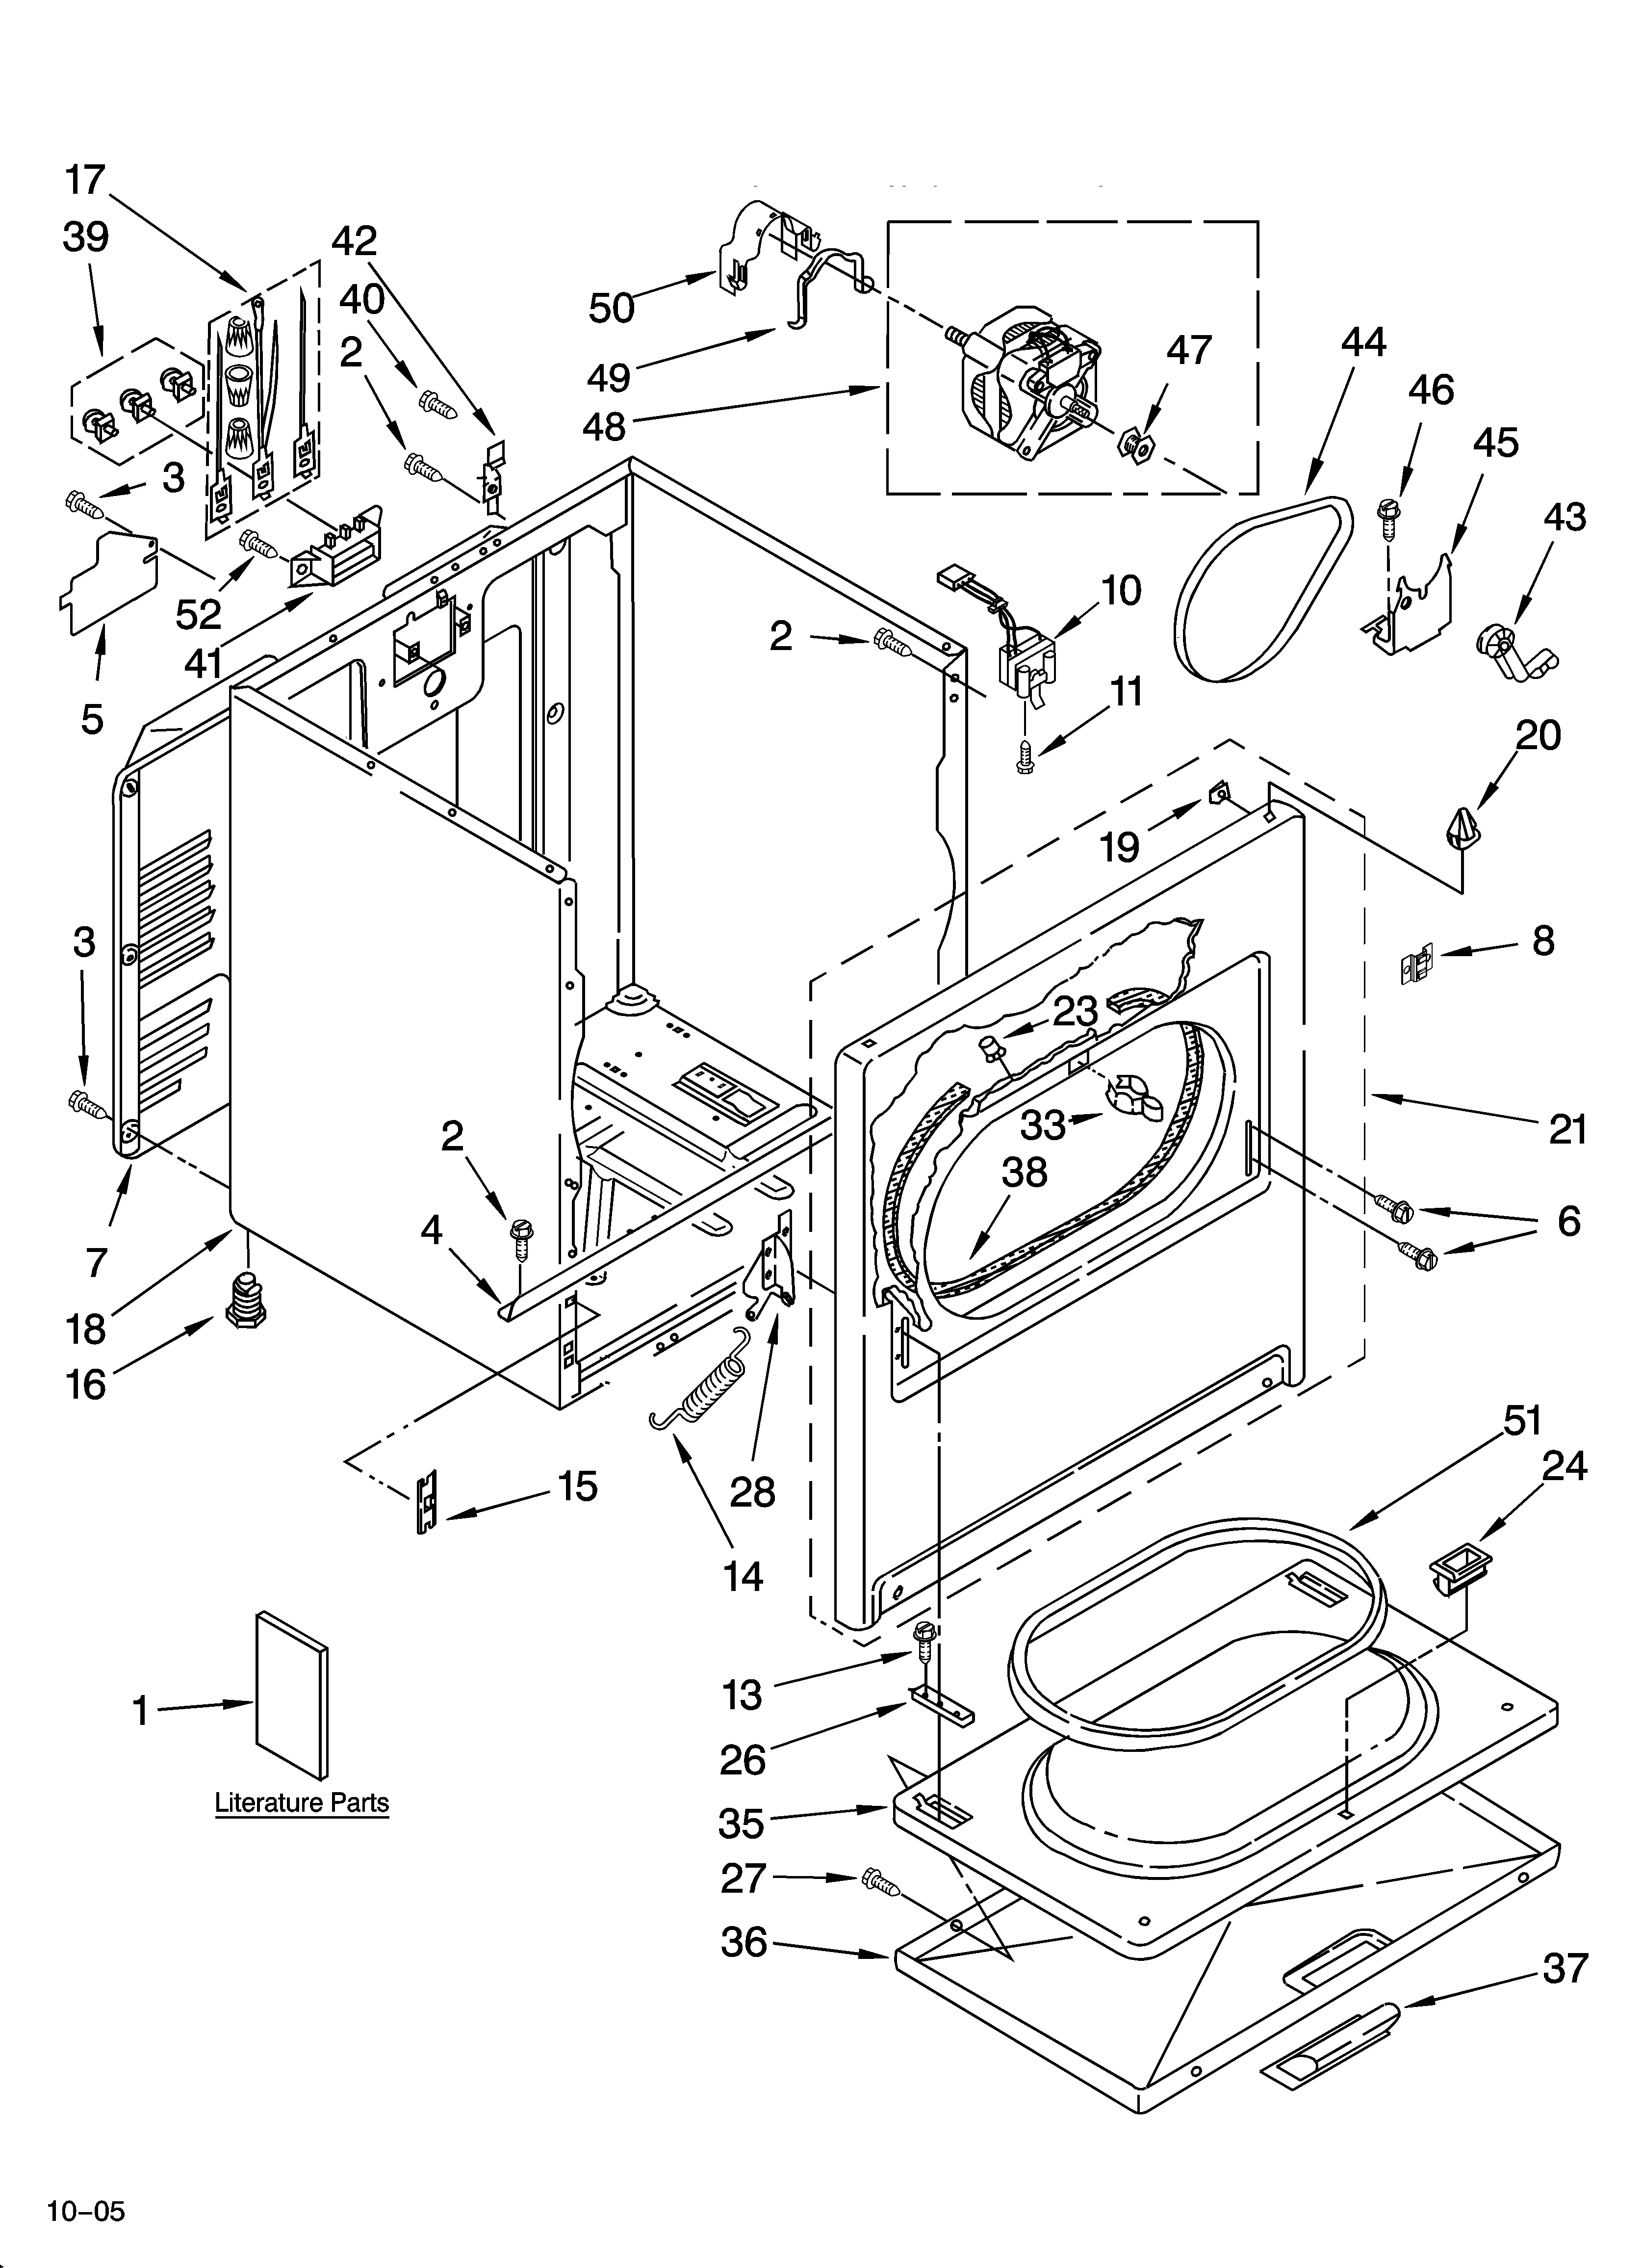 Whirlpool Drawing At Free For Personal Use Dryer Wiring Diagram Colored 3348x4623 Model Leq9508pw1 Residential Genuine Parts